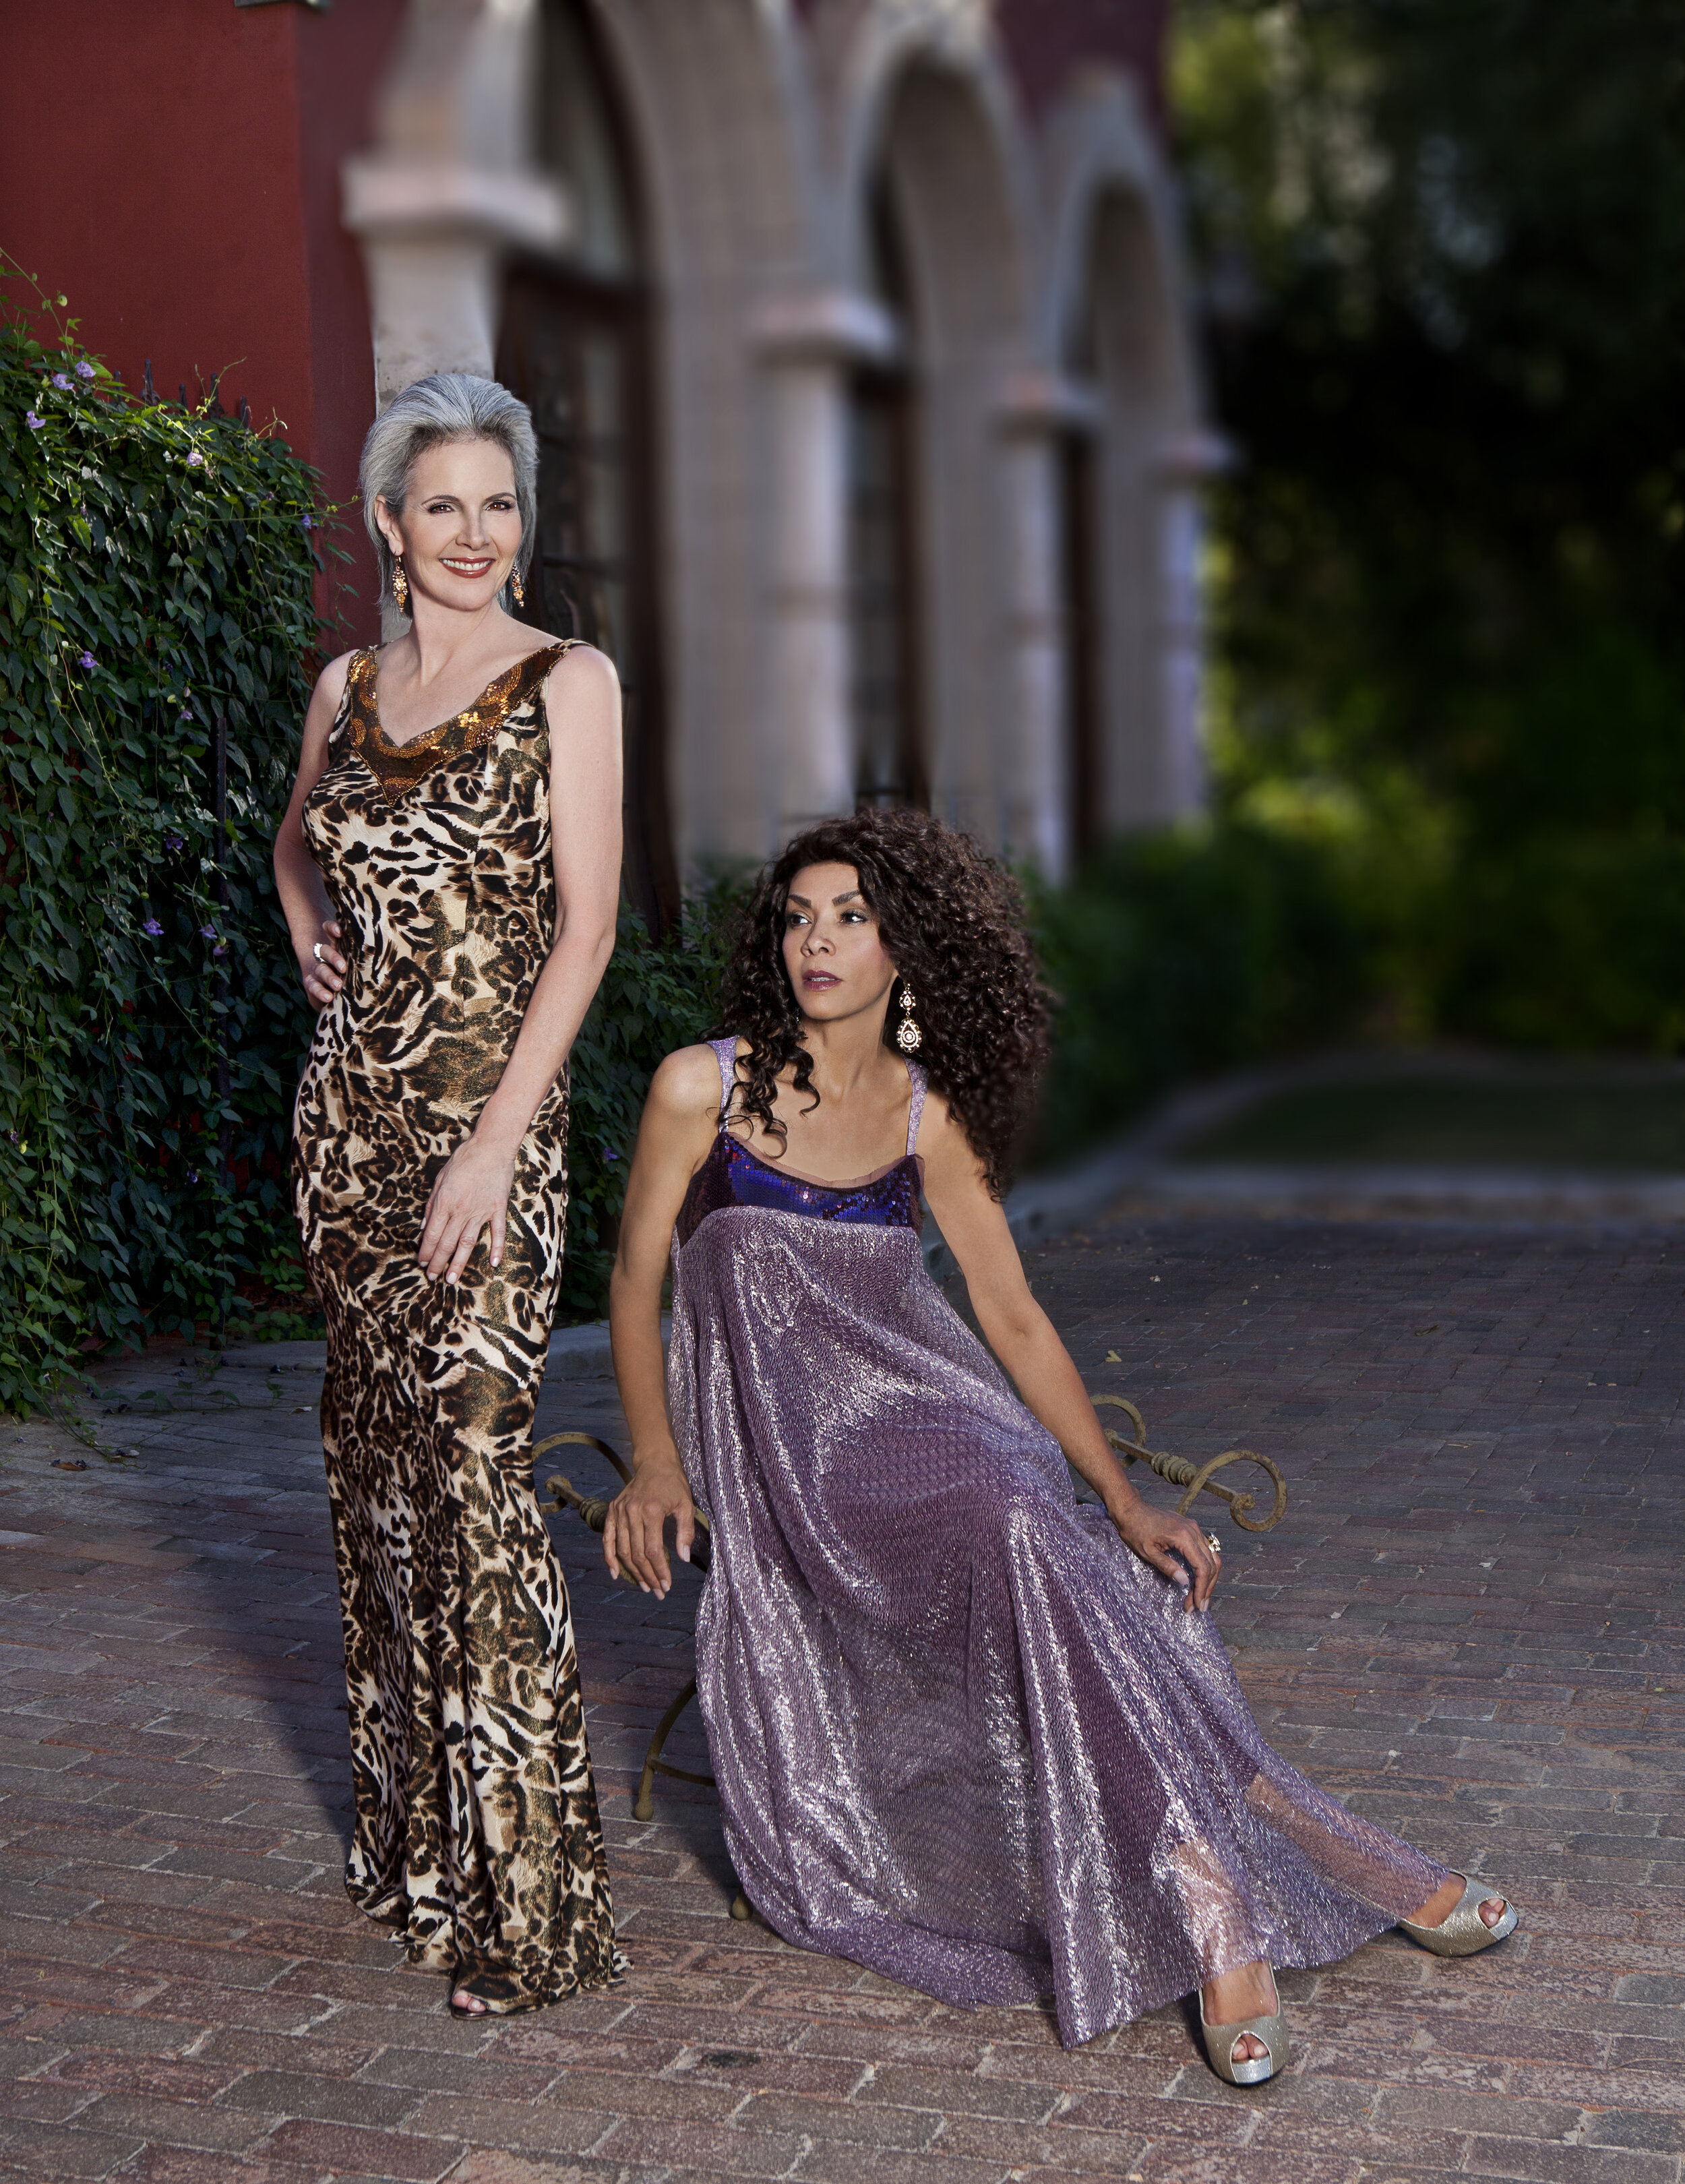 Leopard print maxi dress and see through metallic purple fabric decorated with sequins custom designed by Alis Fashion Design for mother of the bride.jpg